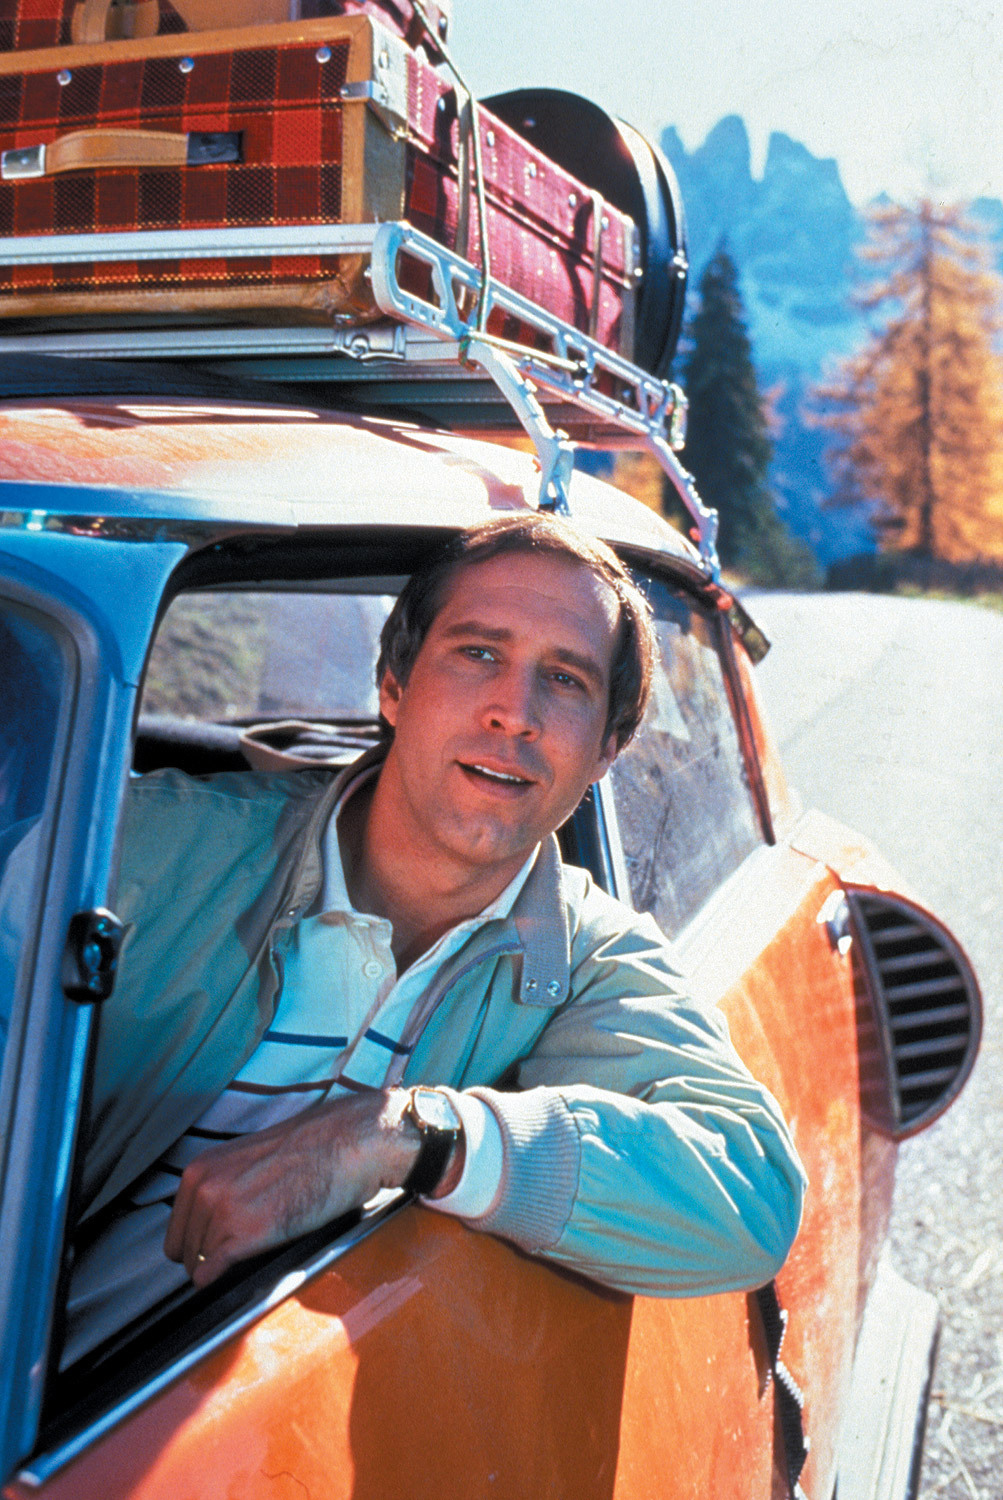 Used Subaru For Sale Near Me >> Image: Chevy Chase in National Lampoon's Vacation, size ...